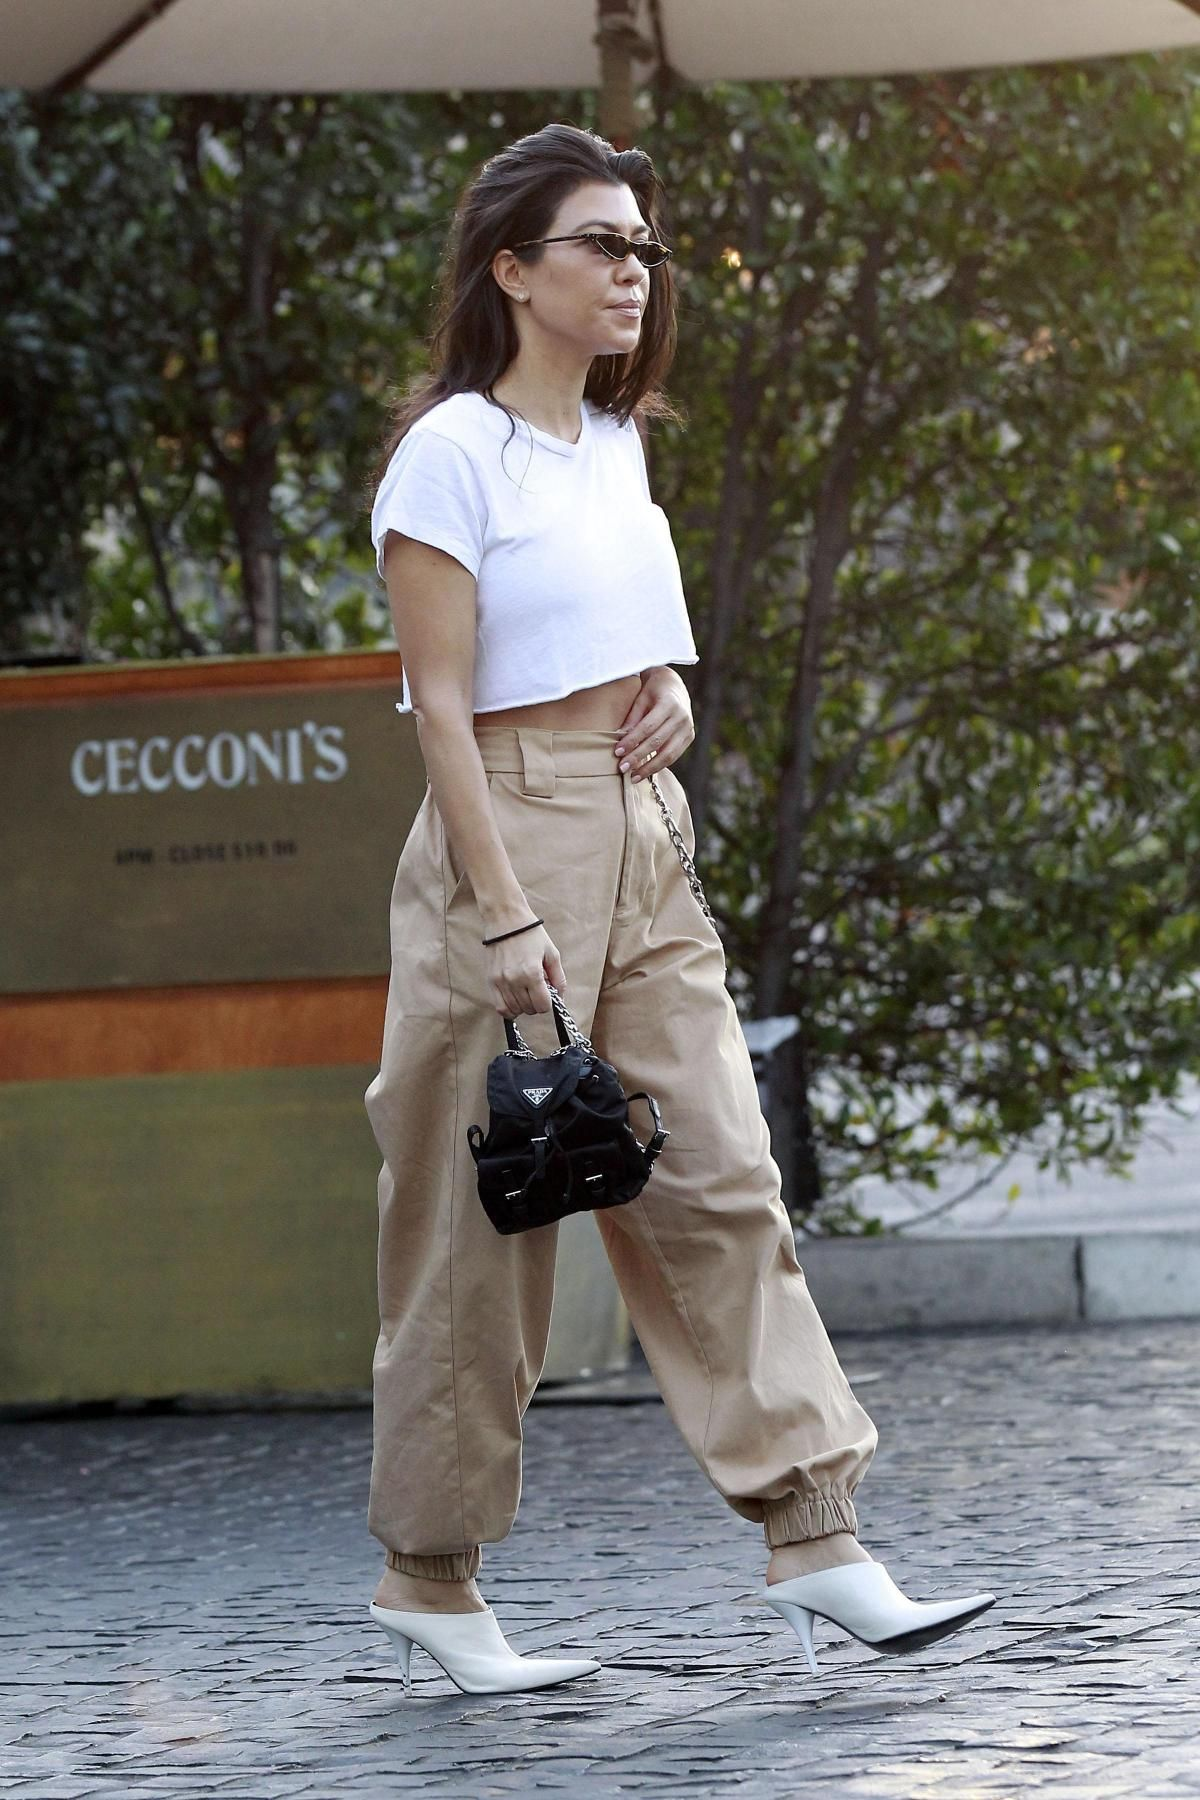 1ef269dae742 Kourtney Kardashian wearing Prada Vela Backpack, Celine White Pointed  Mules, I.am.gia Cobain Pants and Re/done 1950s Boxy Tee